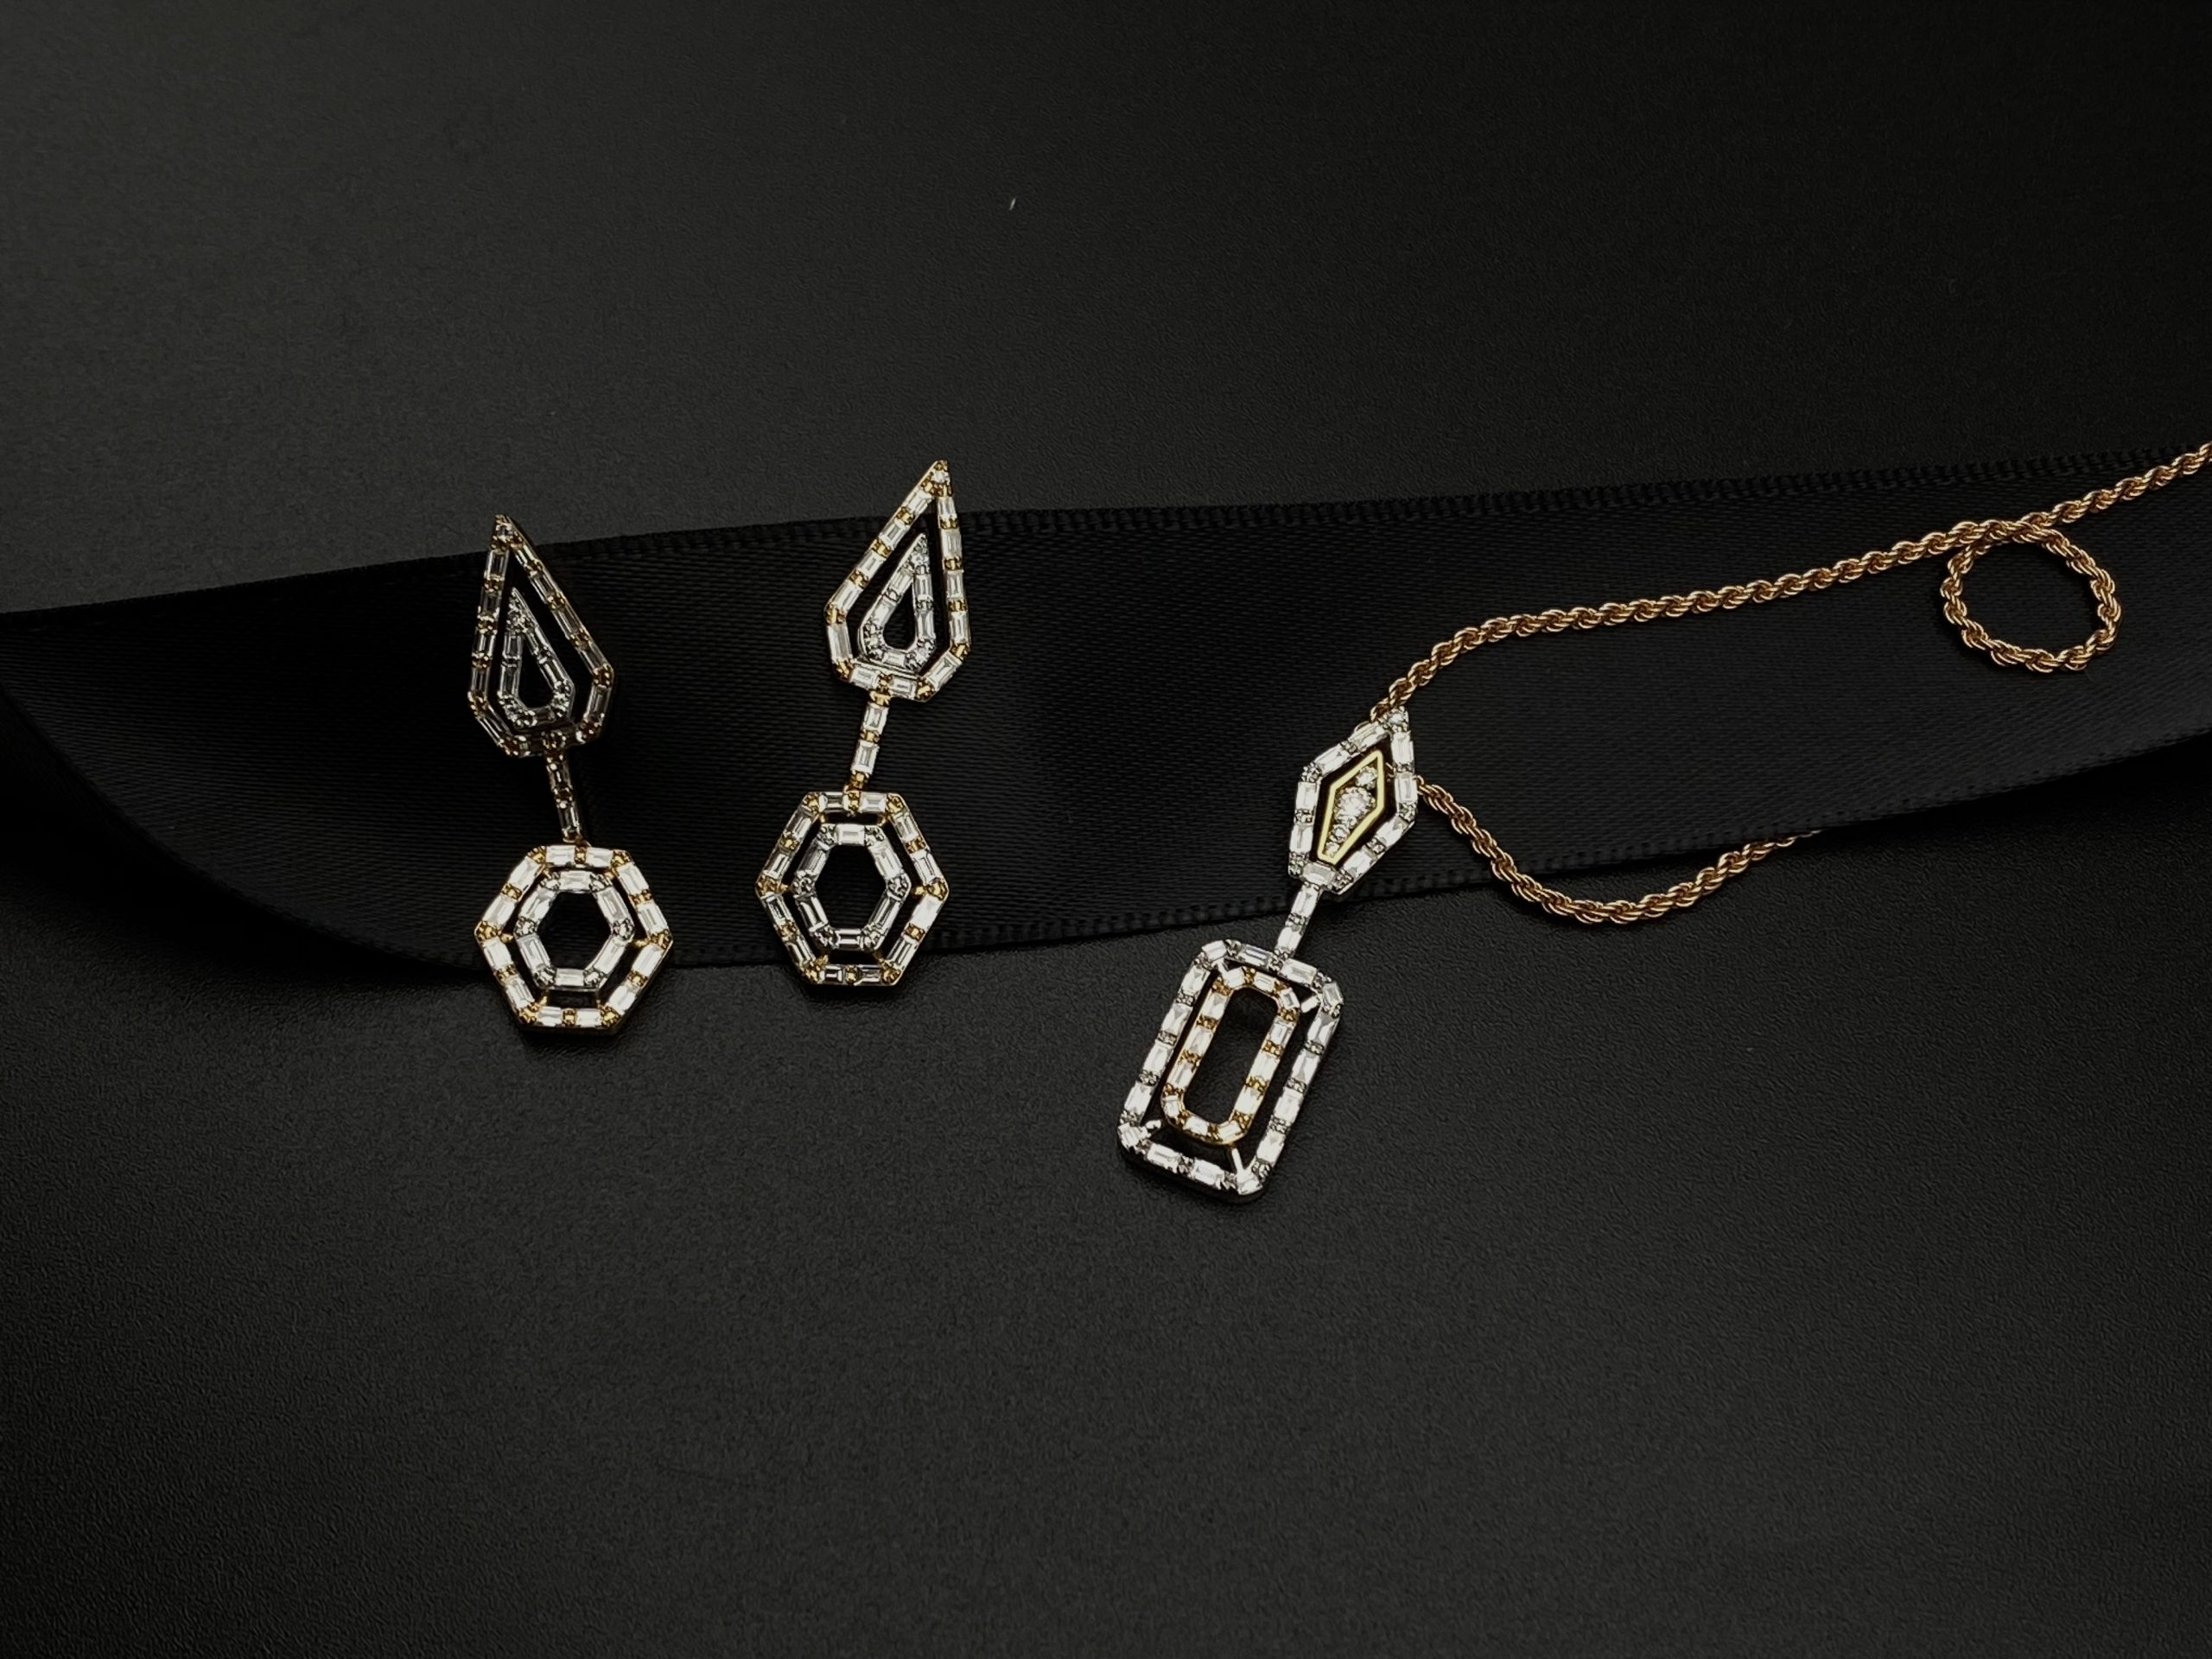 bryanston jewellers products rings bracelets earrings necklaces